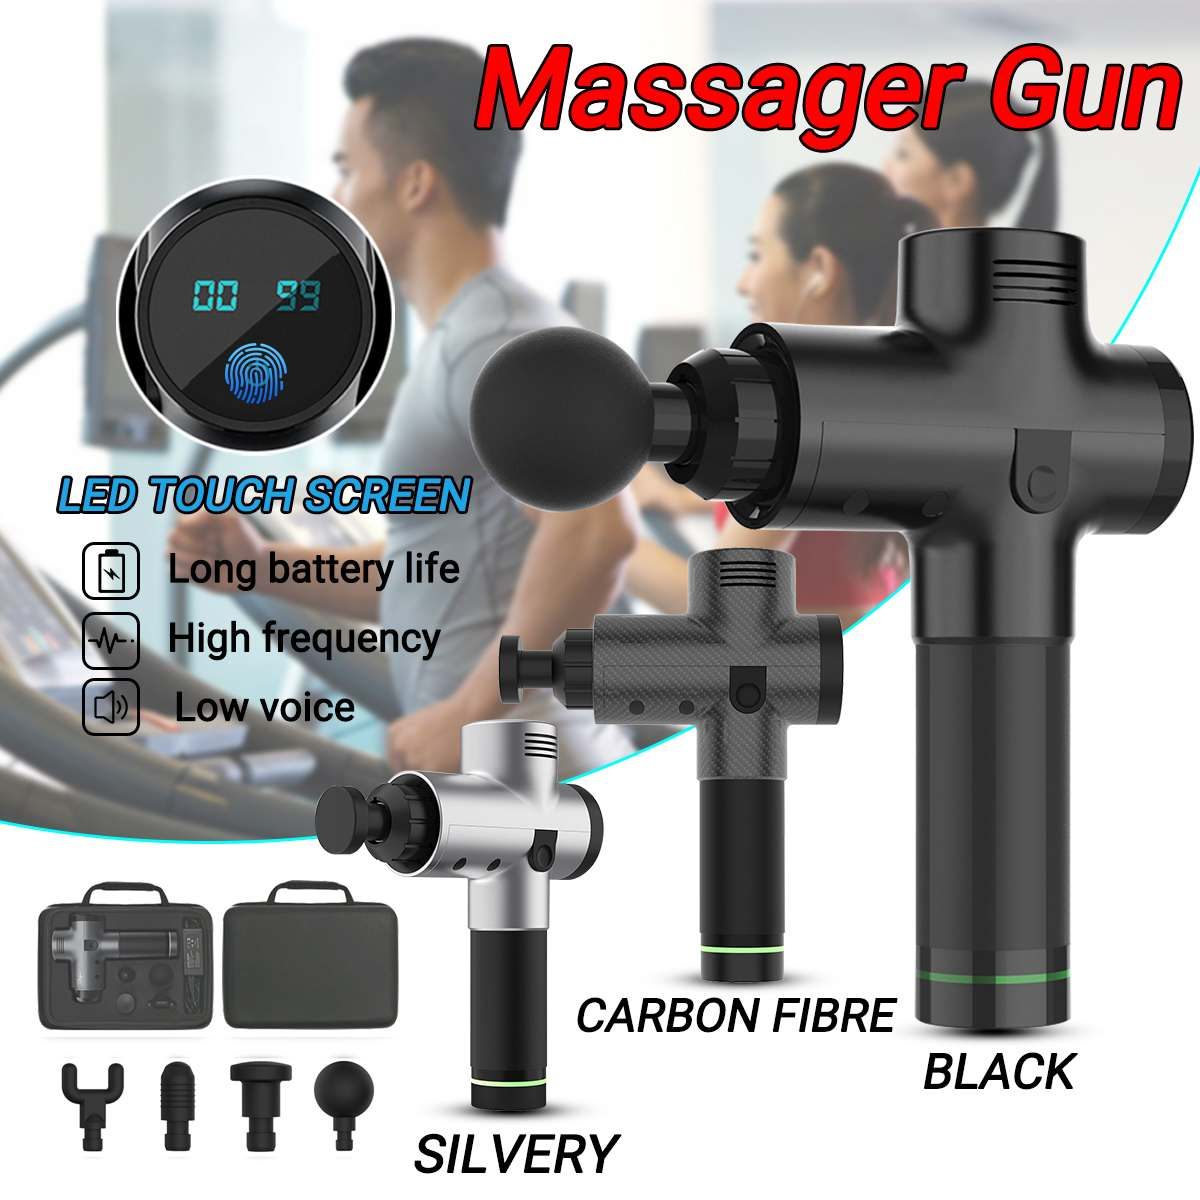 6 Files Electronic Therapy Body Massage for Gun Low Noise LED 3600r Massage Guns Body Muscles Relaxing Relief Pains With 4 heads6 Files Electronic Therapy Body Massage for Gun Low Noise LED 3600r Massage Guns Body Muscles Relaxing Relief Pains With 4 heads